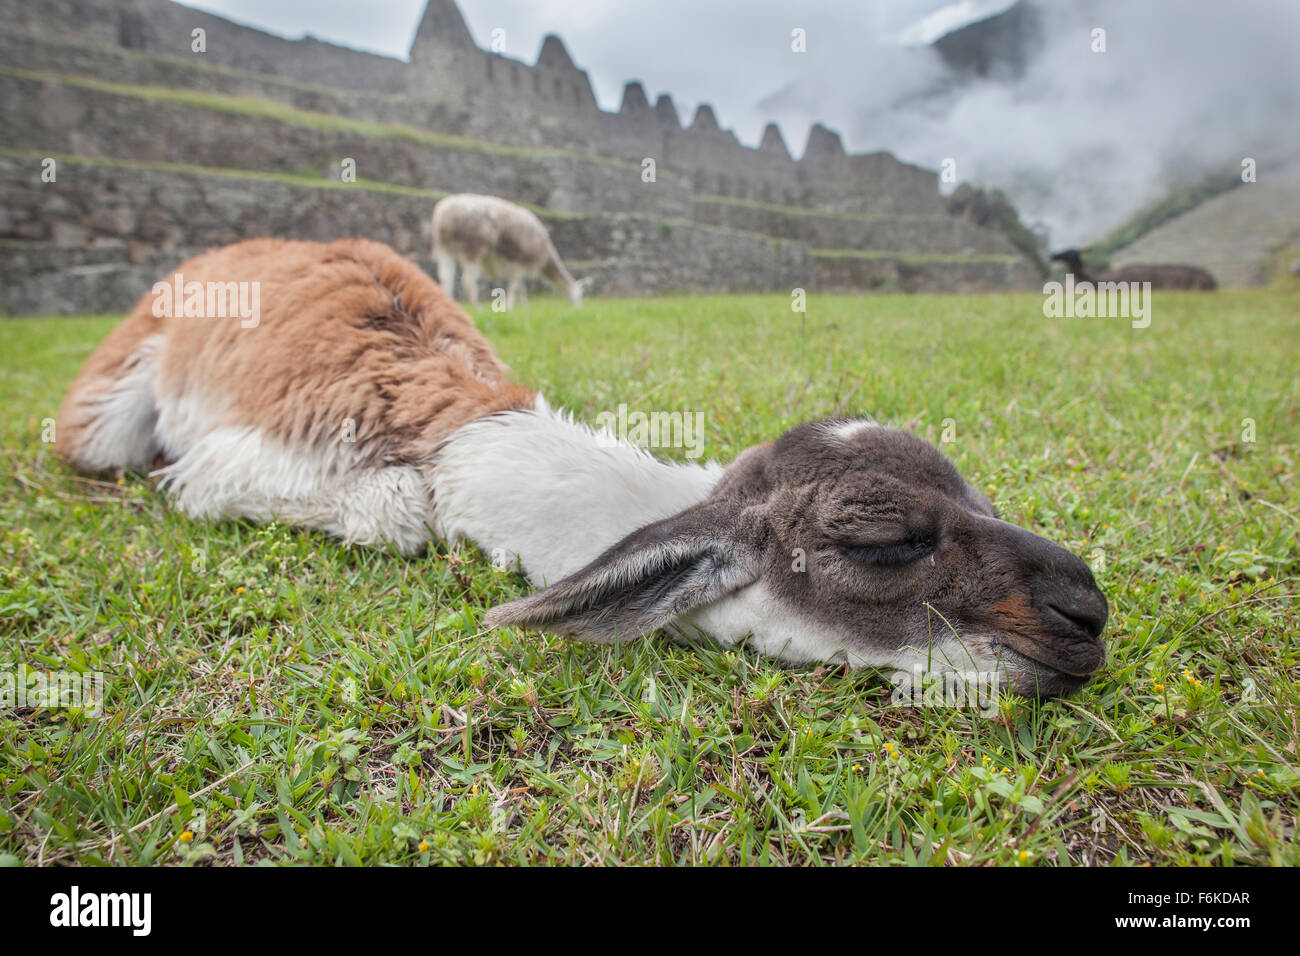 A young llama (cria) dozes in front of ancient Incan ruins at Machu Picchu, Peru. - Stock Image